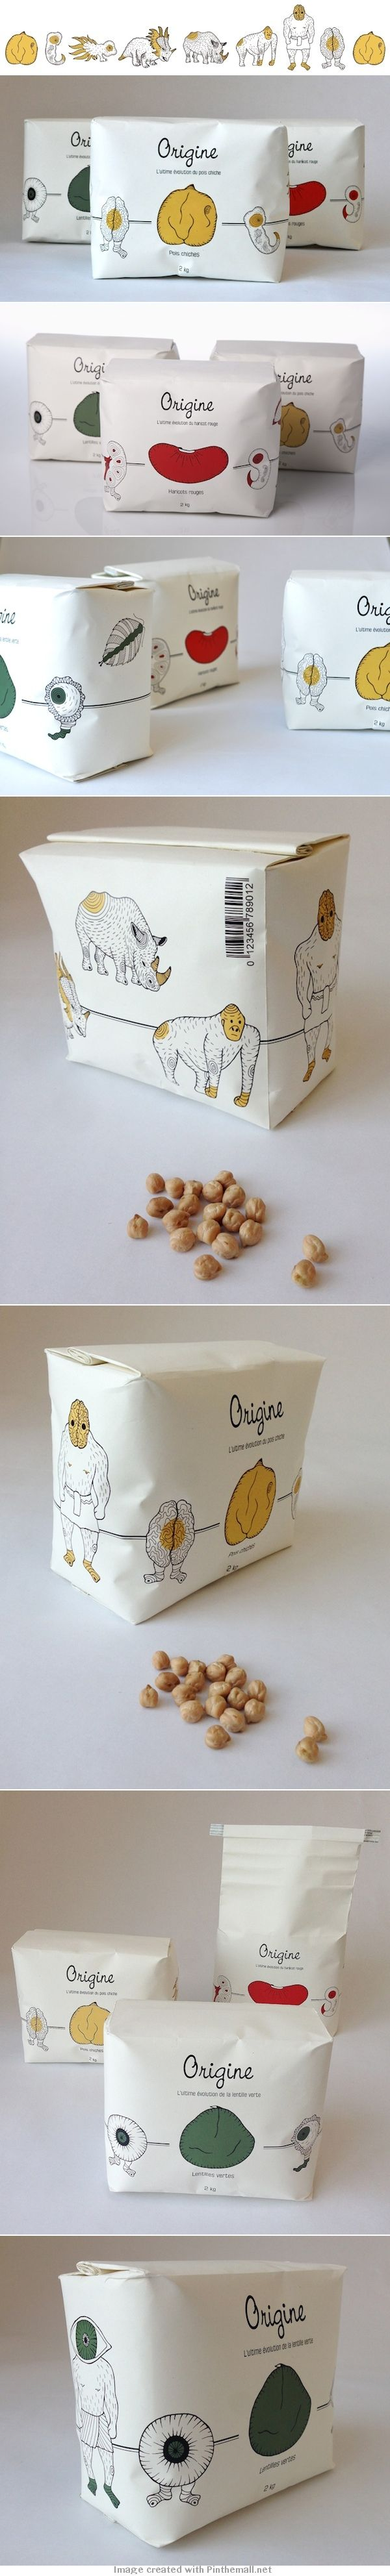 Just when you think you have seen the cutest #nut #packaging along comes some more PD - created http://www.experimenta.es/noticias/breves/origine-packaging-maha-rabiyi